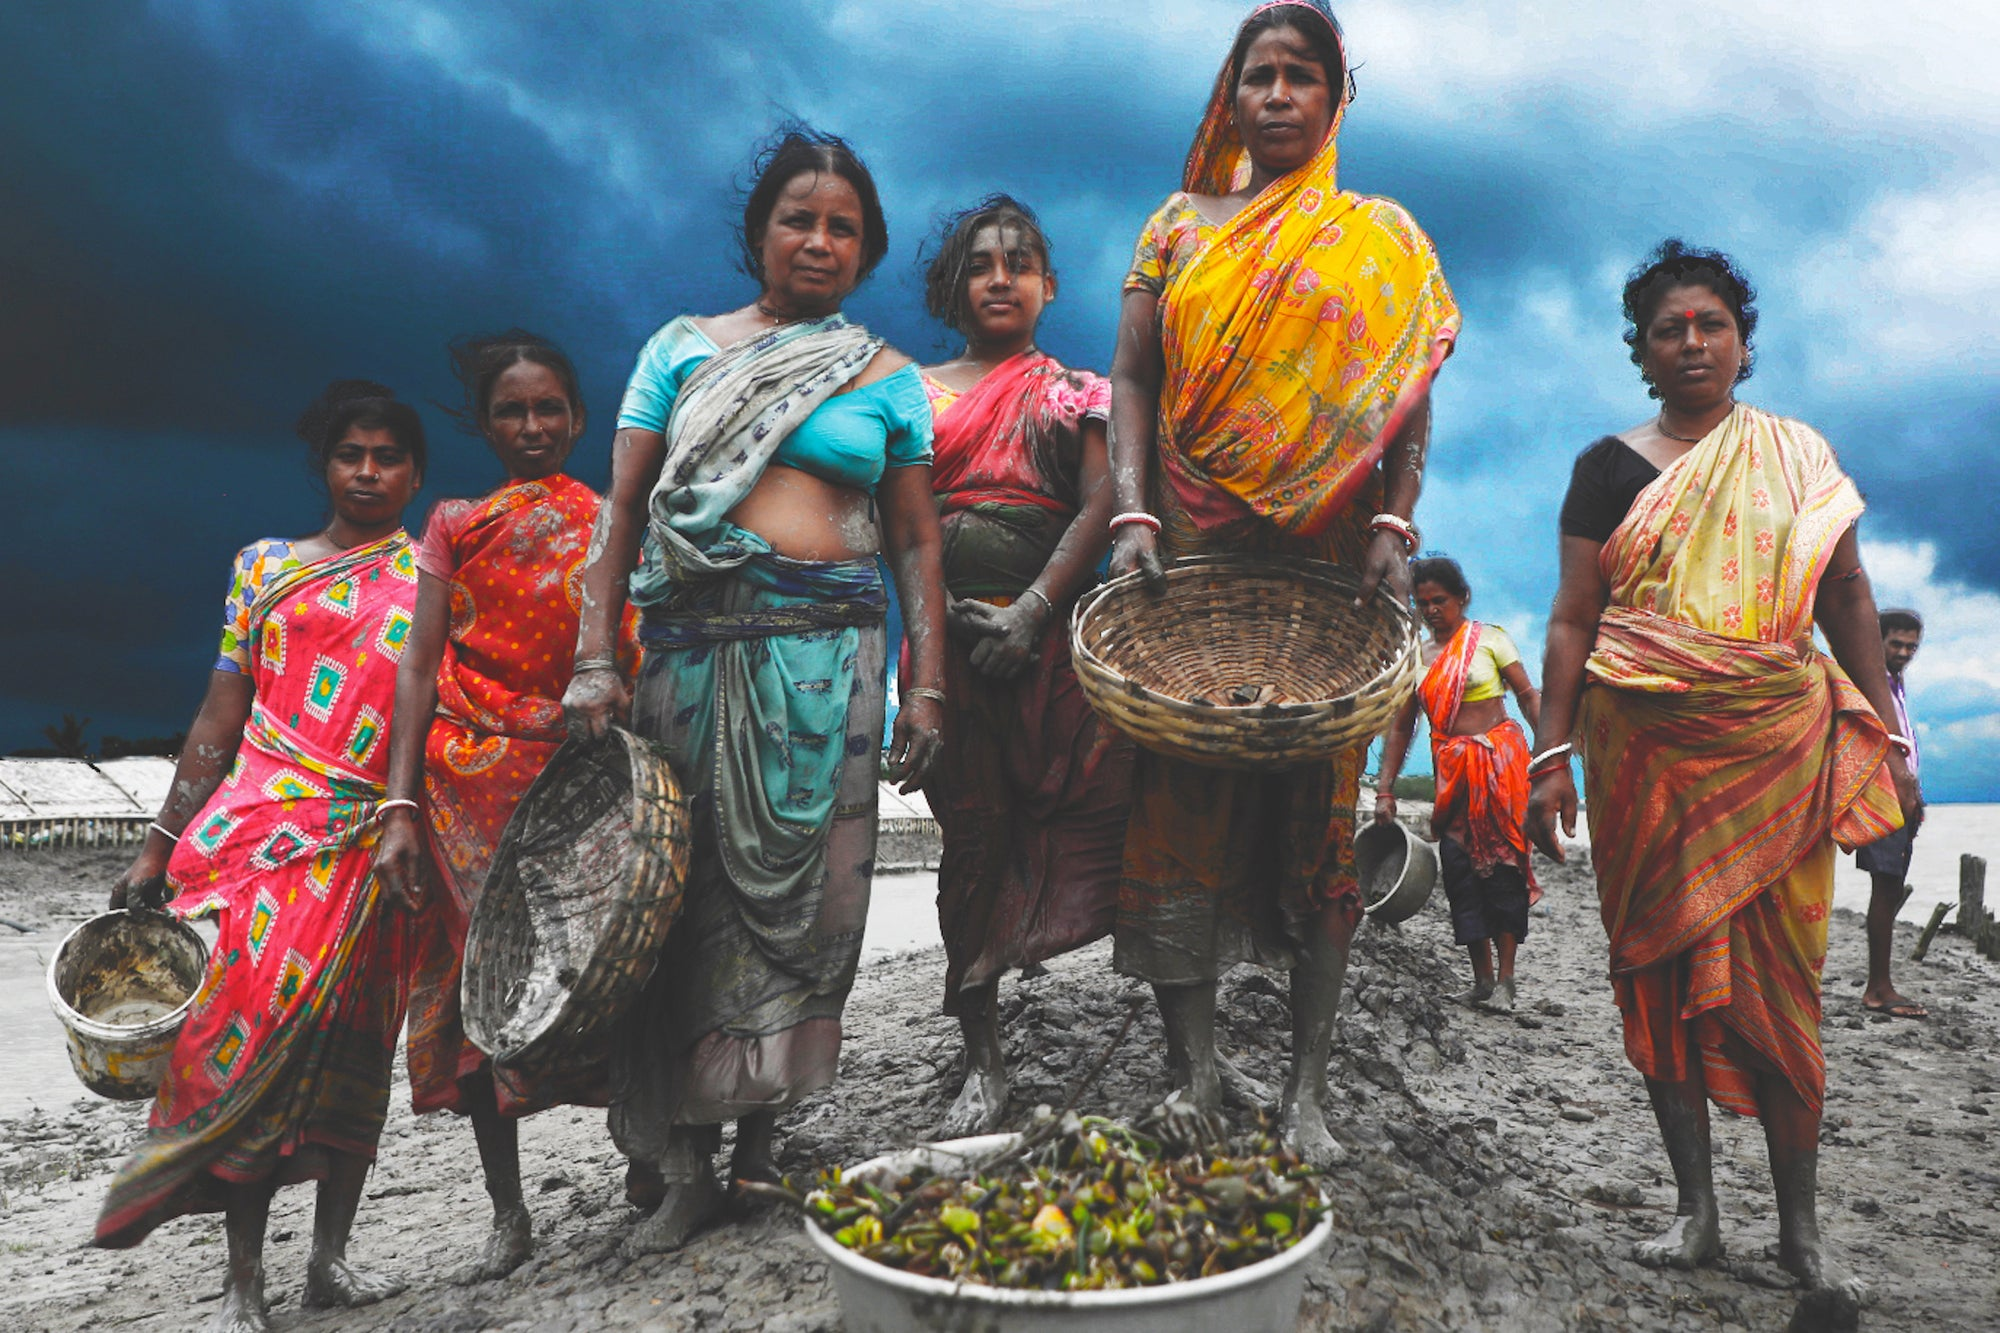 women on beach planting trees india